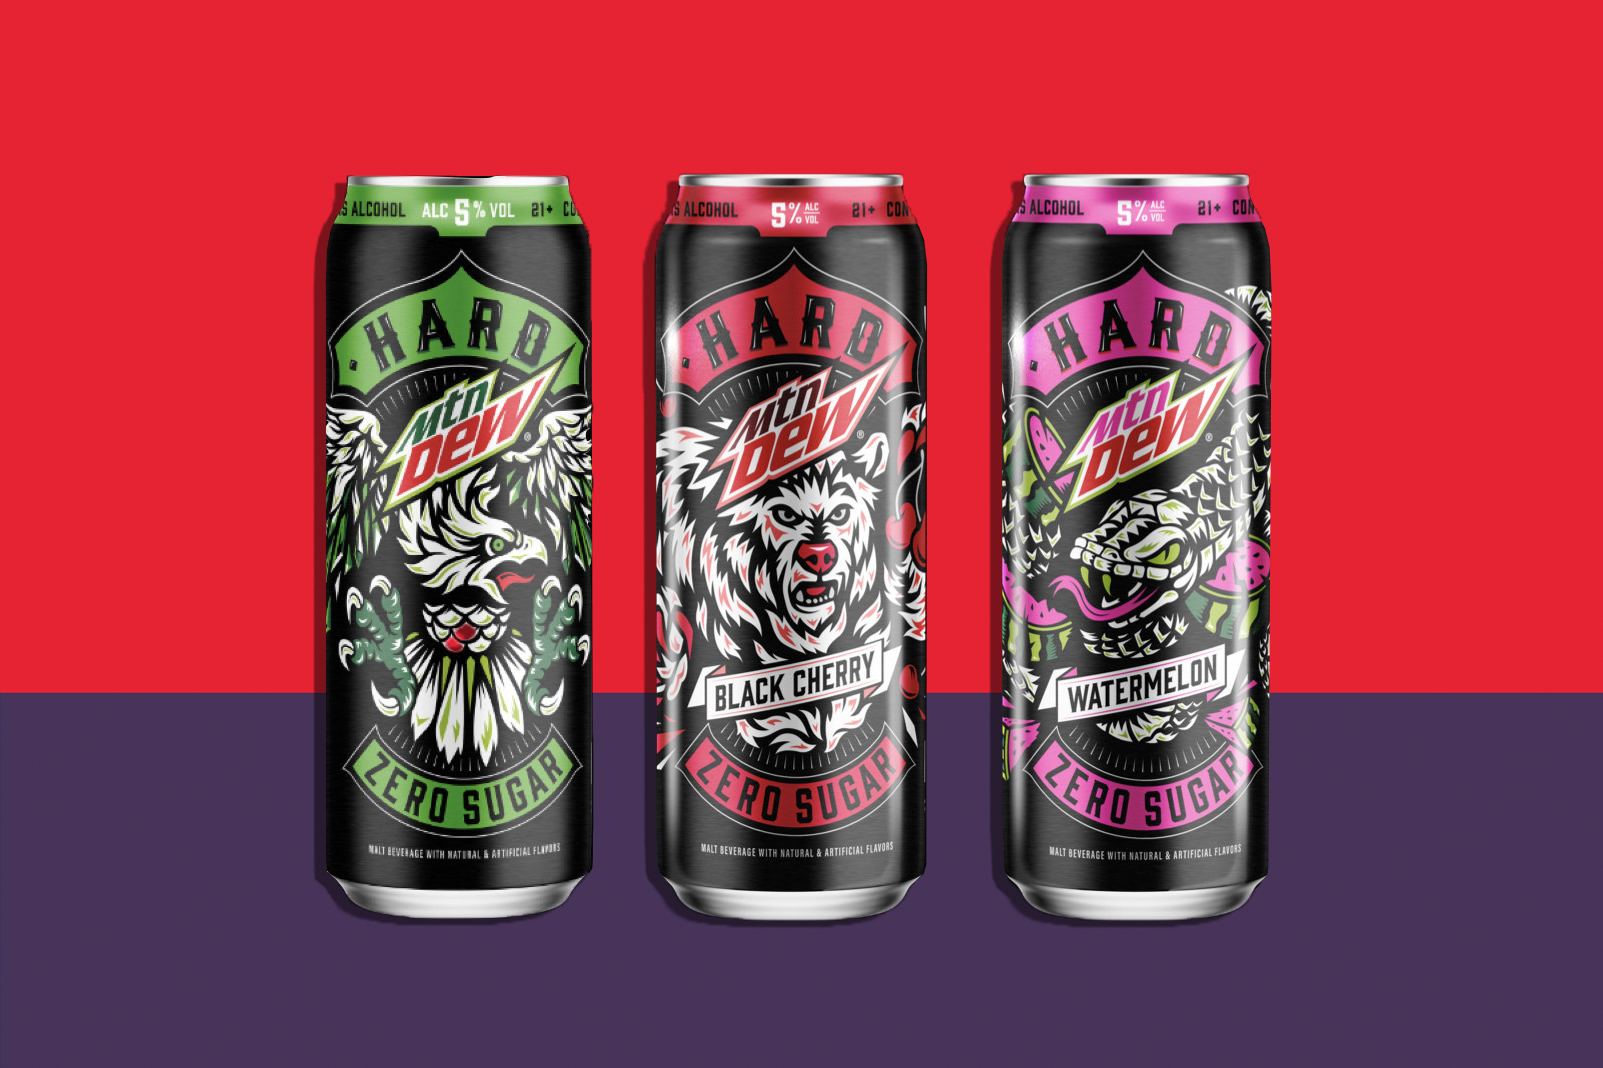 Cans of Hard Man Dew